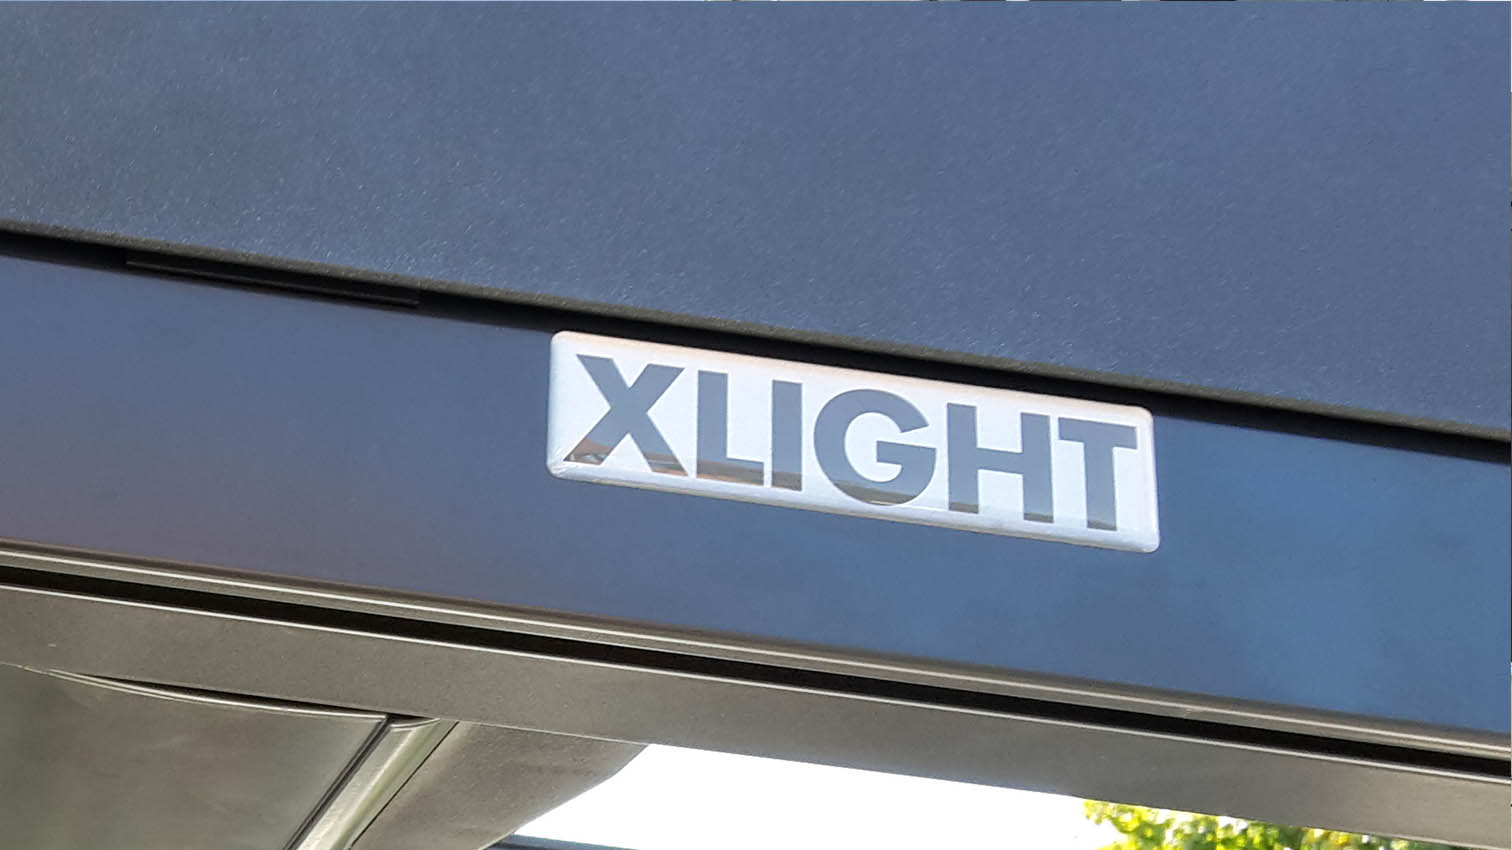 Markise XLIGHT